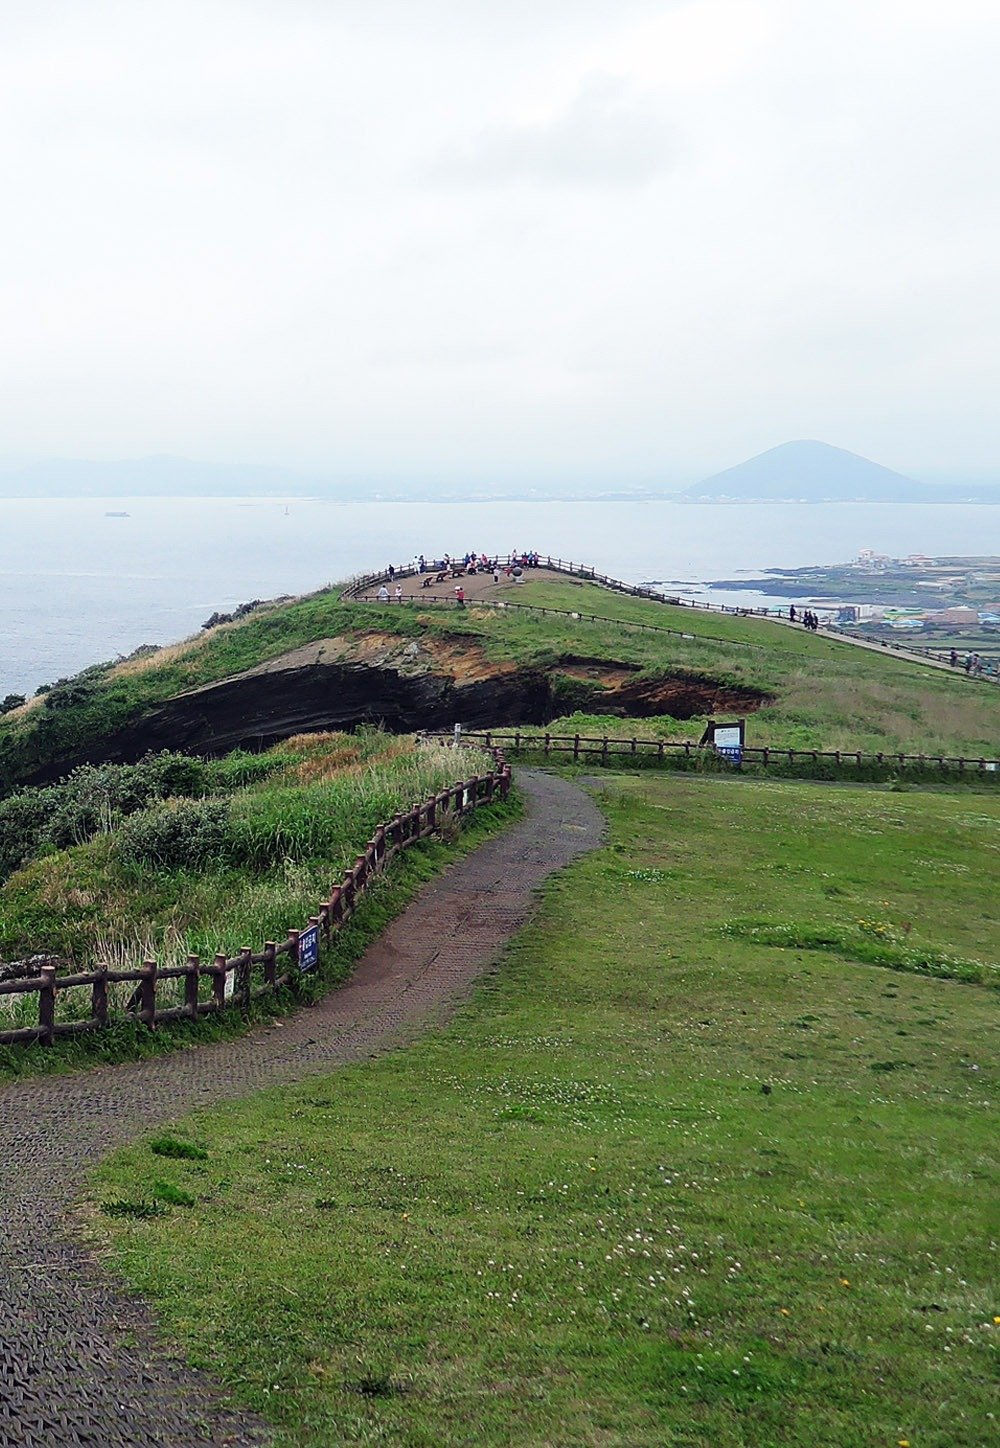 Views from Udobong Peak, the highest point of Udo Island.